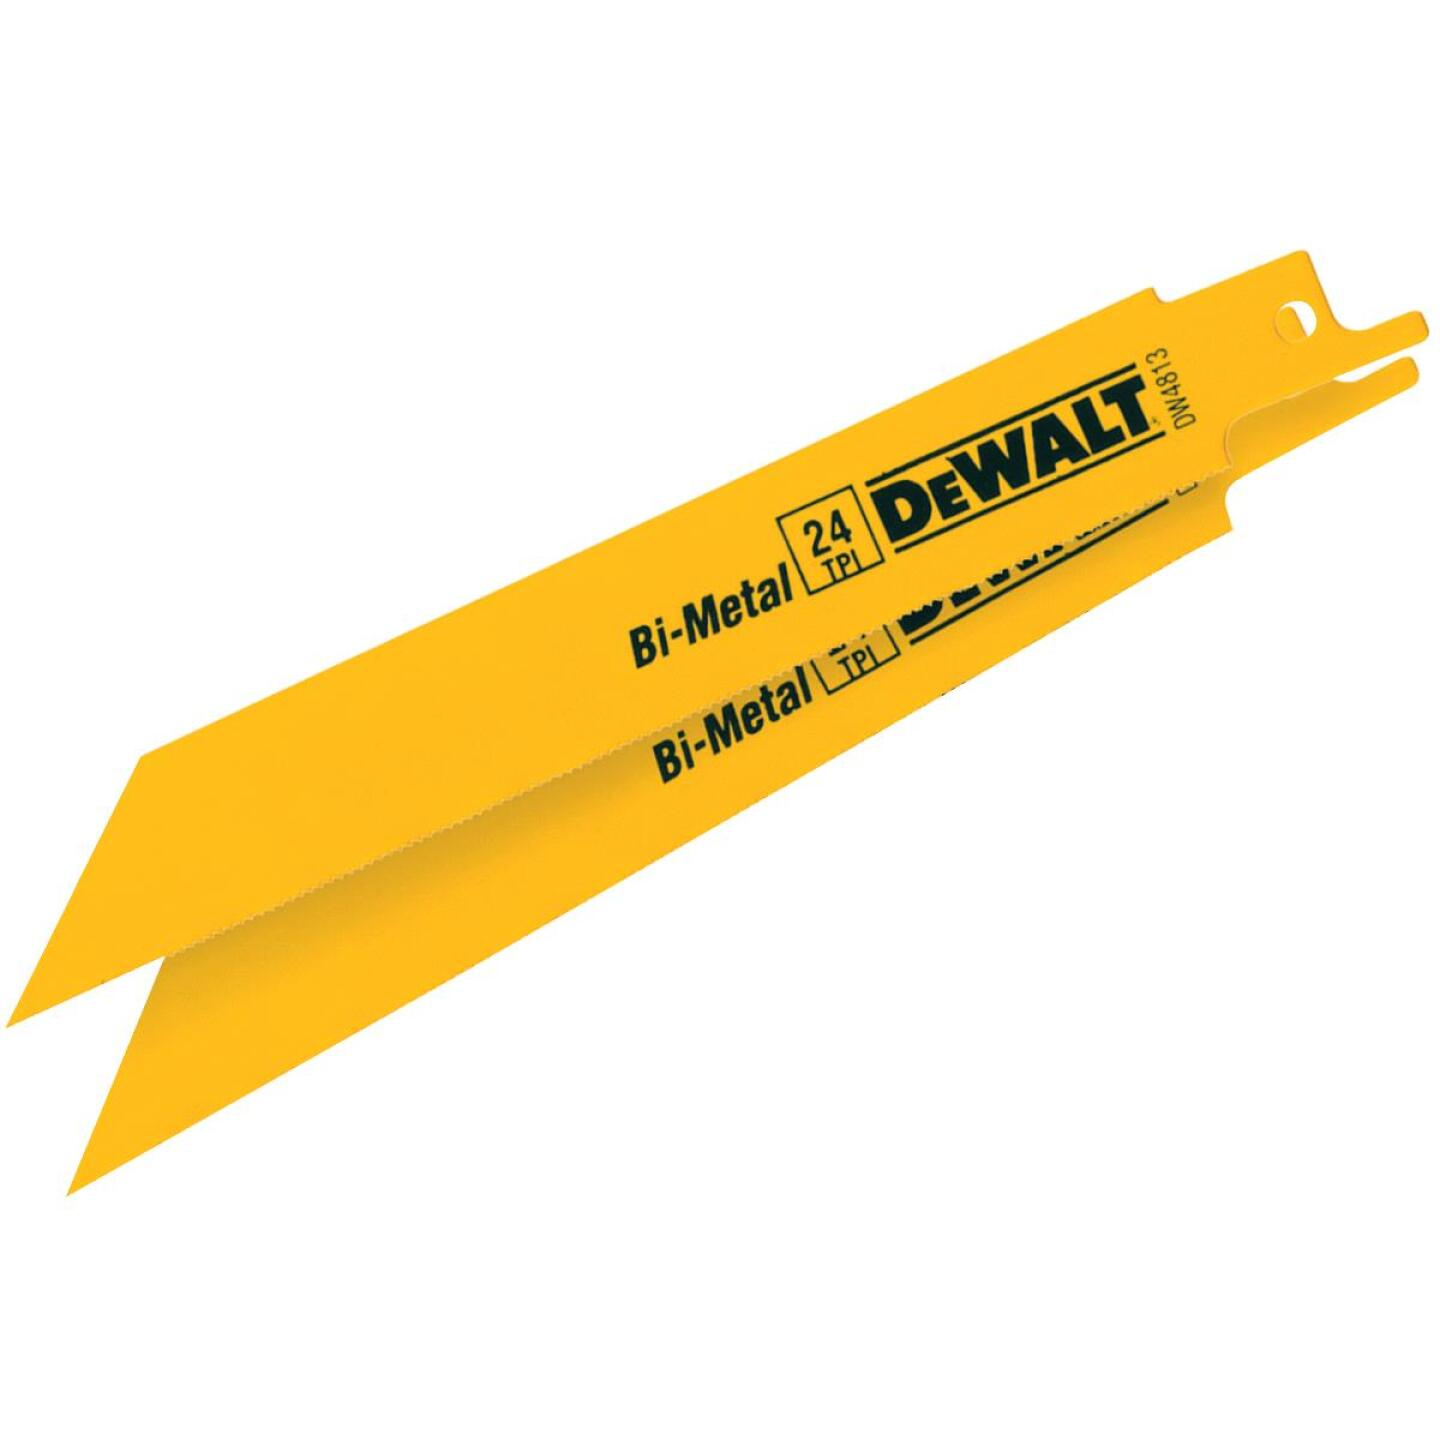 DeWalt 6 In. 24 TPI Thin Metal Reciprocating Saw Blade (2-Pack) Image 1